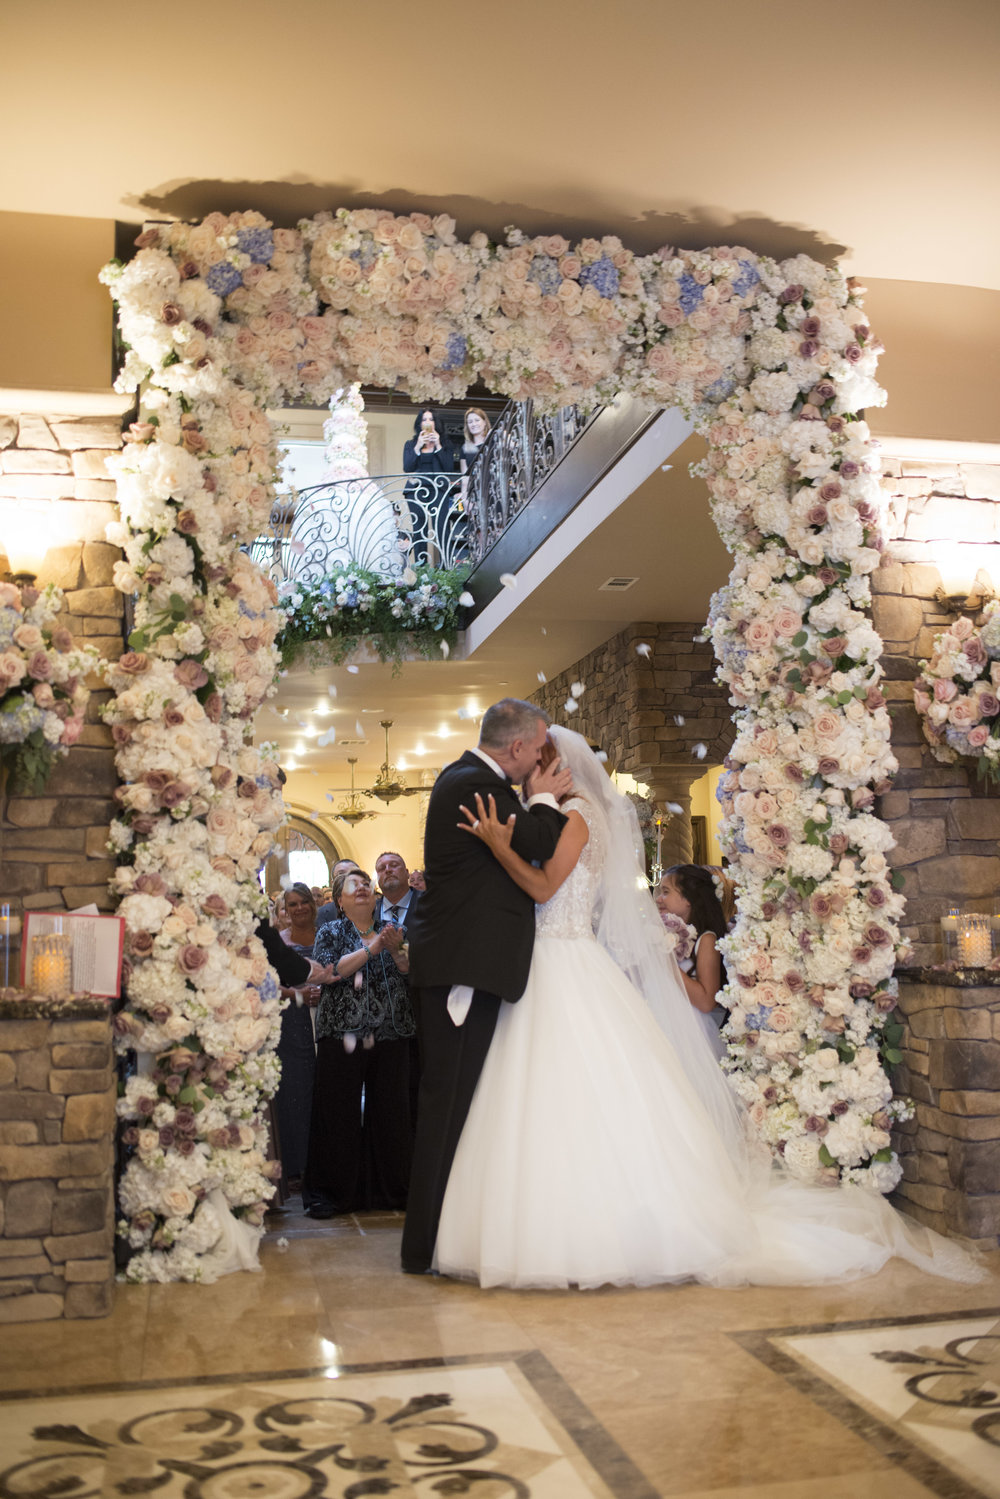 First Kiss with guests in the background. Luxury Las Vegas Wedding Planner Andrea Eppolito.  Image by AltF Photography.